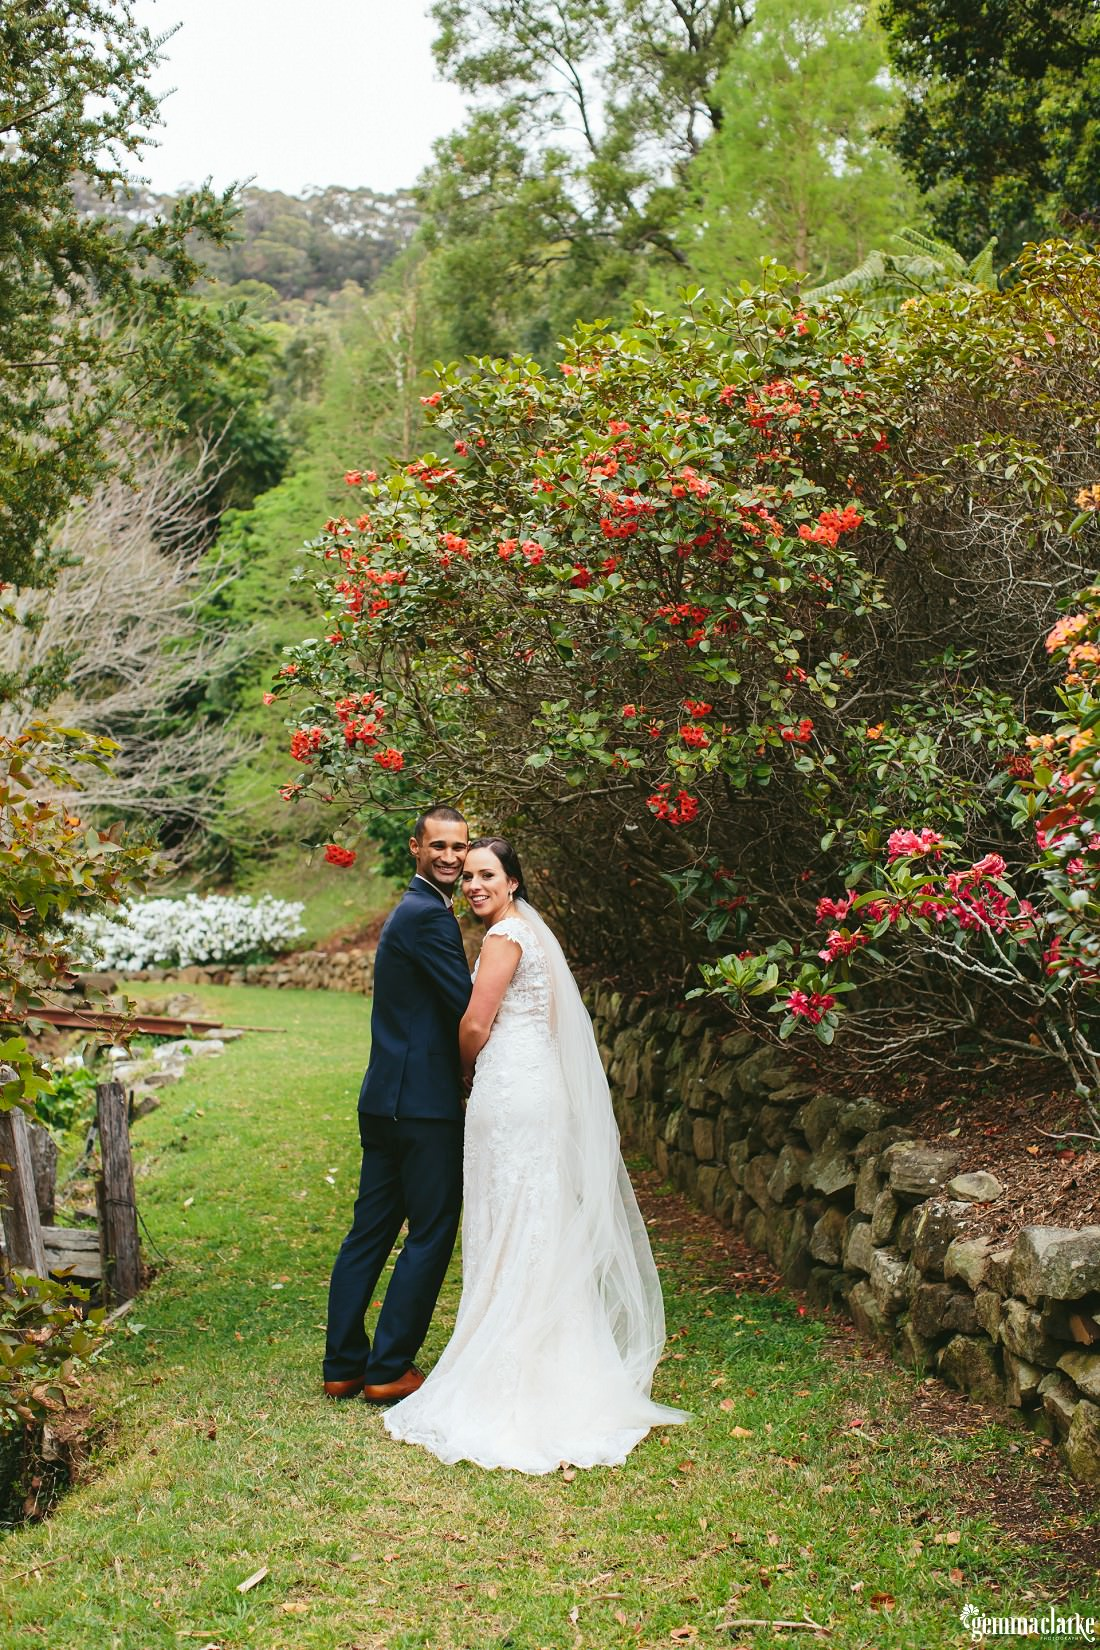 A bride and groom in a garden smiling back over their shoulders